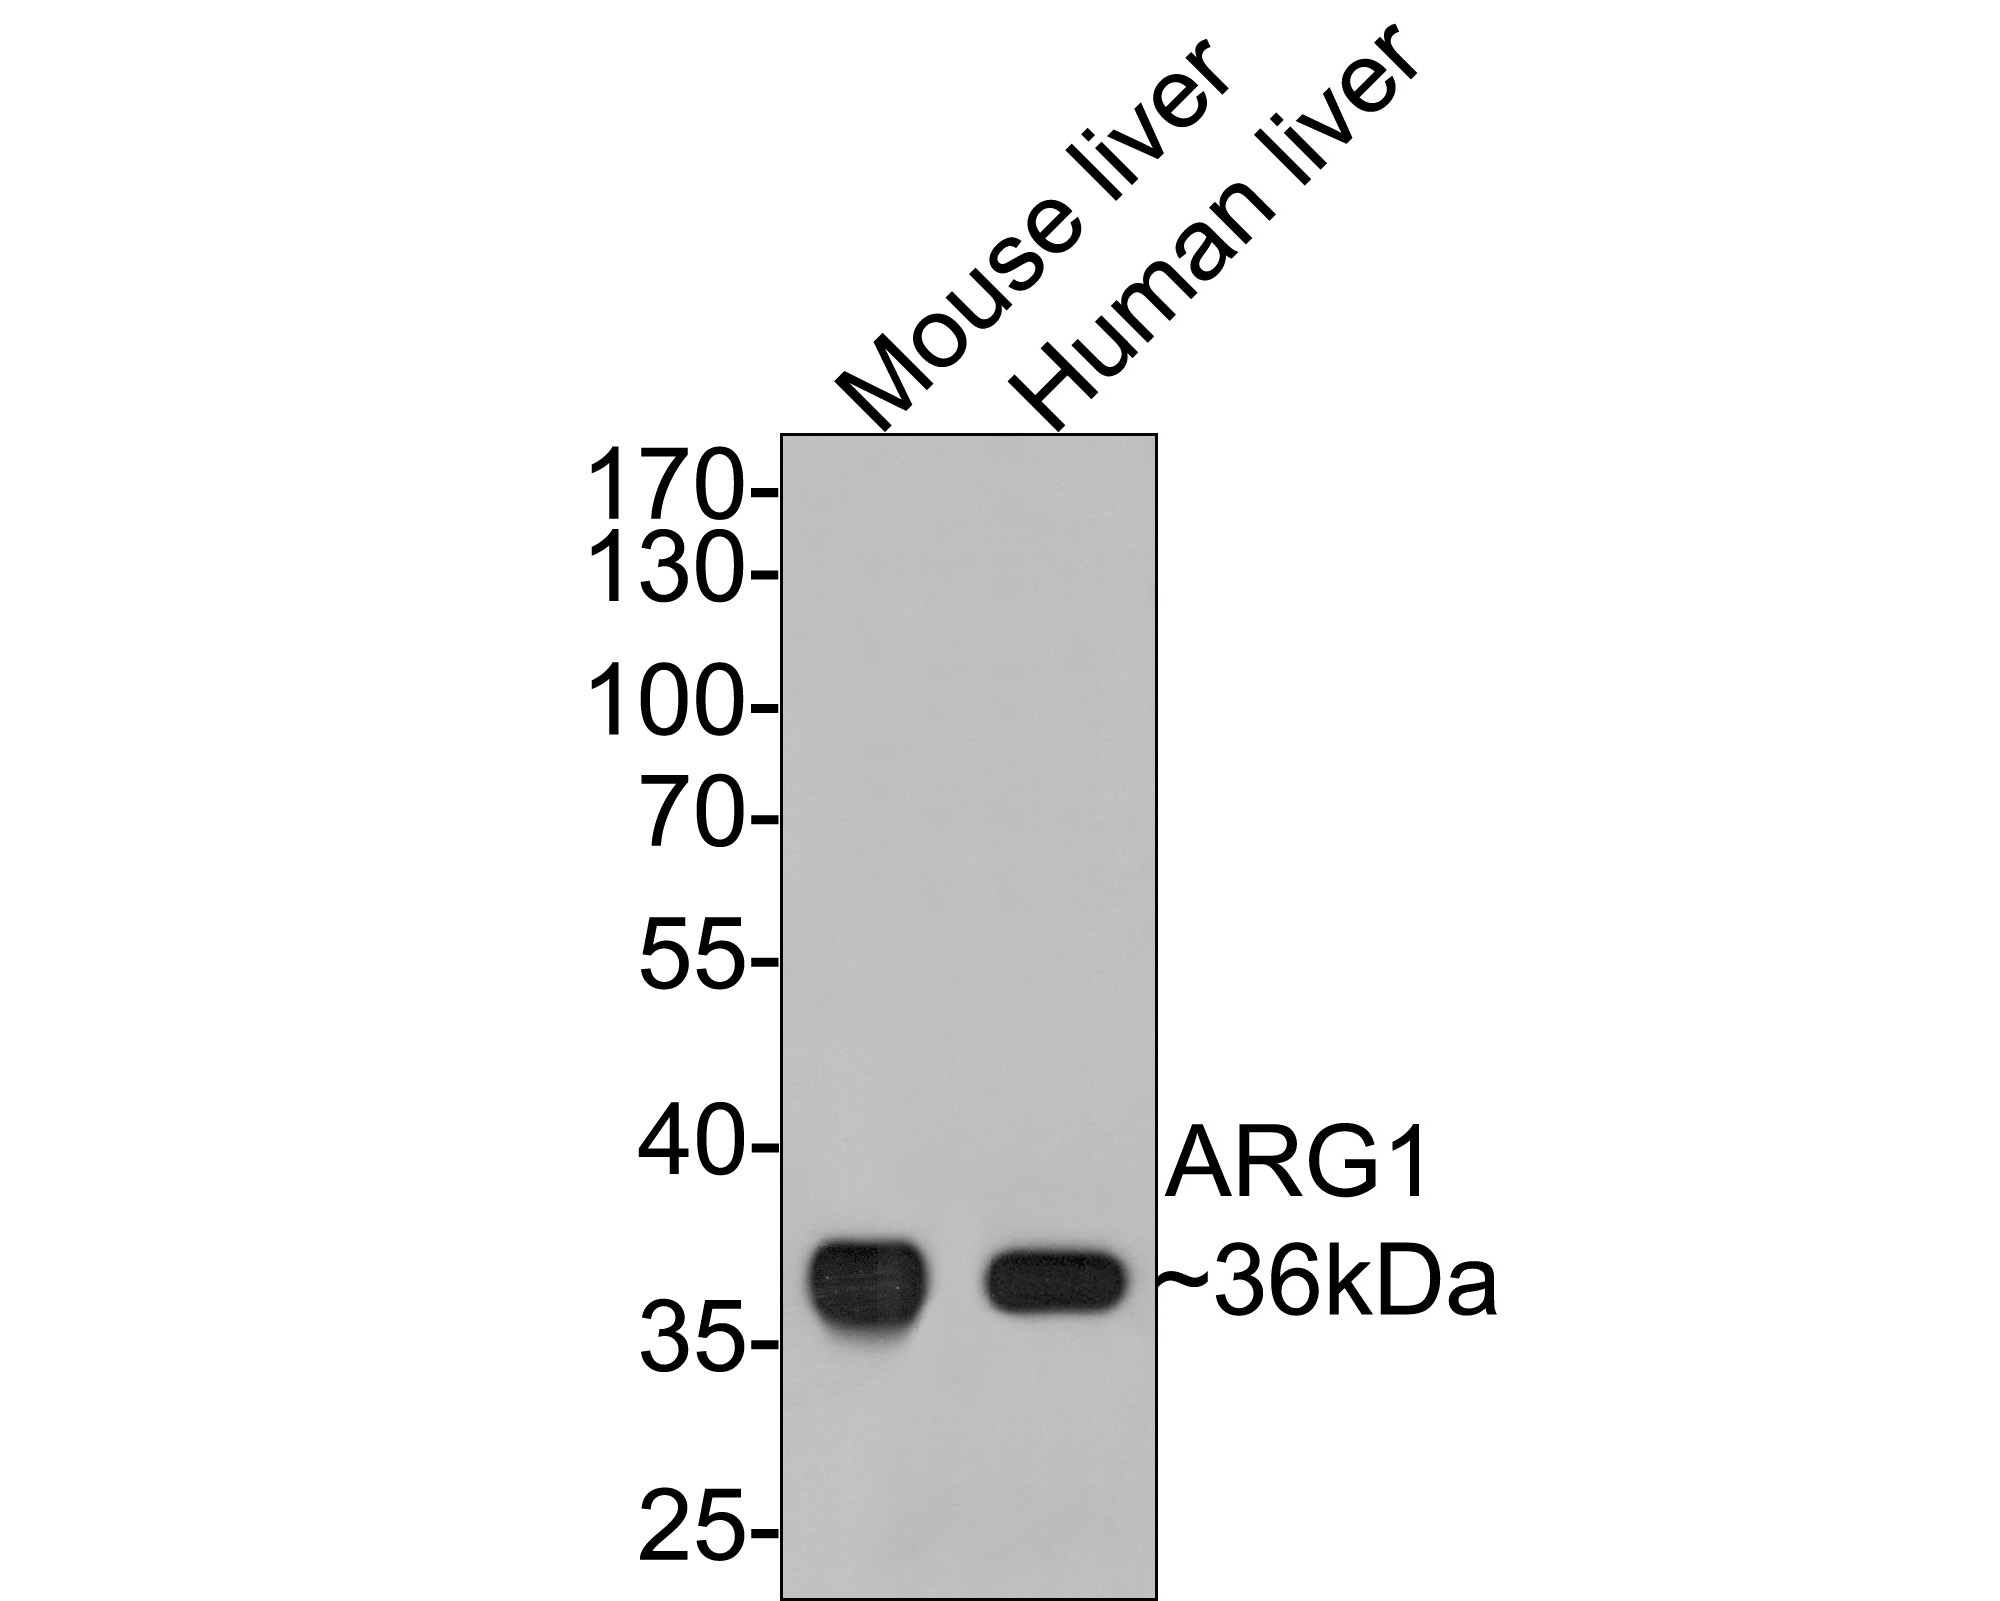 Western blot analysis of ARG1 on different lysates. Proteins were transferred to a PVDF membrane and blocked with 5% BSA in PBS for 1 hour at room temperature. The primary antibody (ET1605-8, 1/500) was used in 5% BSA at room temperature for 2 hours. Goat Anti-Rabbit IgG - HRP Secondary Antibody (HA1001) at 1:5,000 dilution was used for 1 hour at room temperature.<br /> Positive control: <br /> Lane 1: human lung tissue lysate<br /> Lane 2: human liver tissue lysate